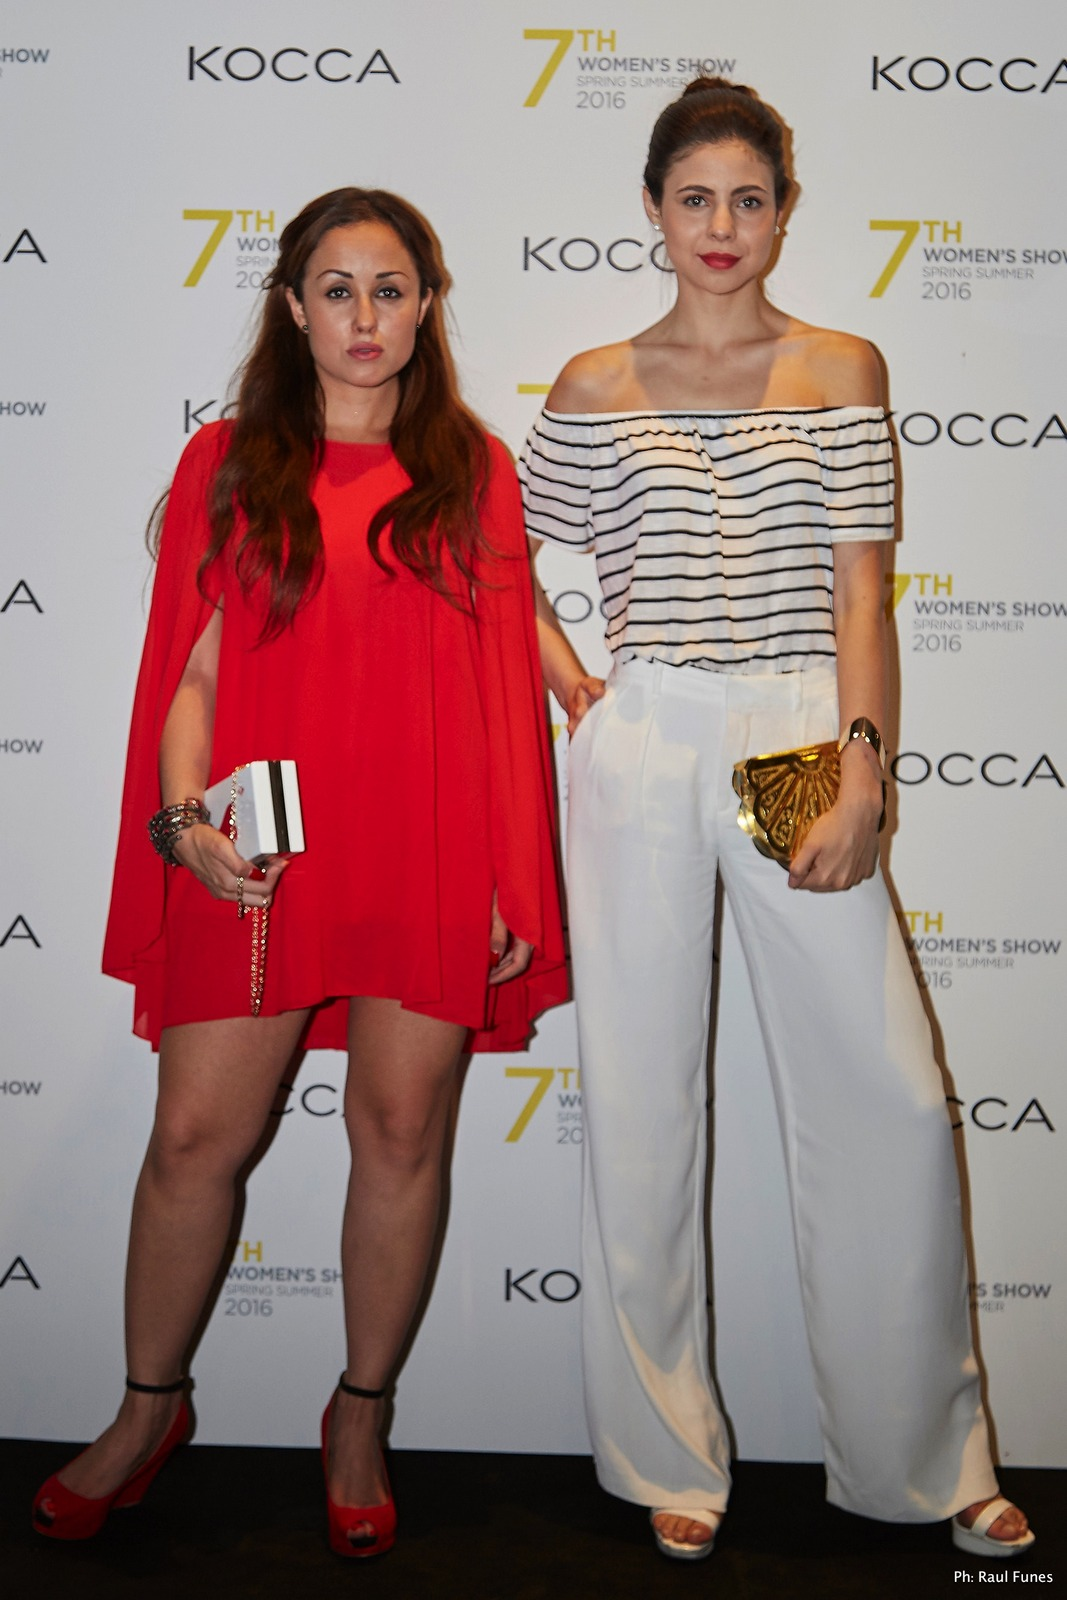 kocca, kocca fashion show, women, ss16, spring/summer, folk, hippie, bohemian, new trends, Events, Fashion Week,